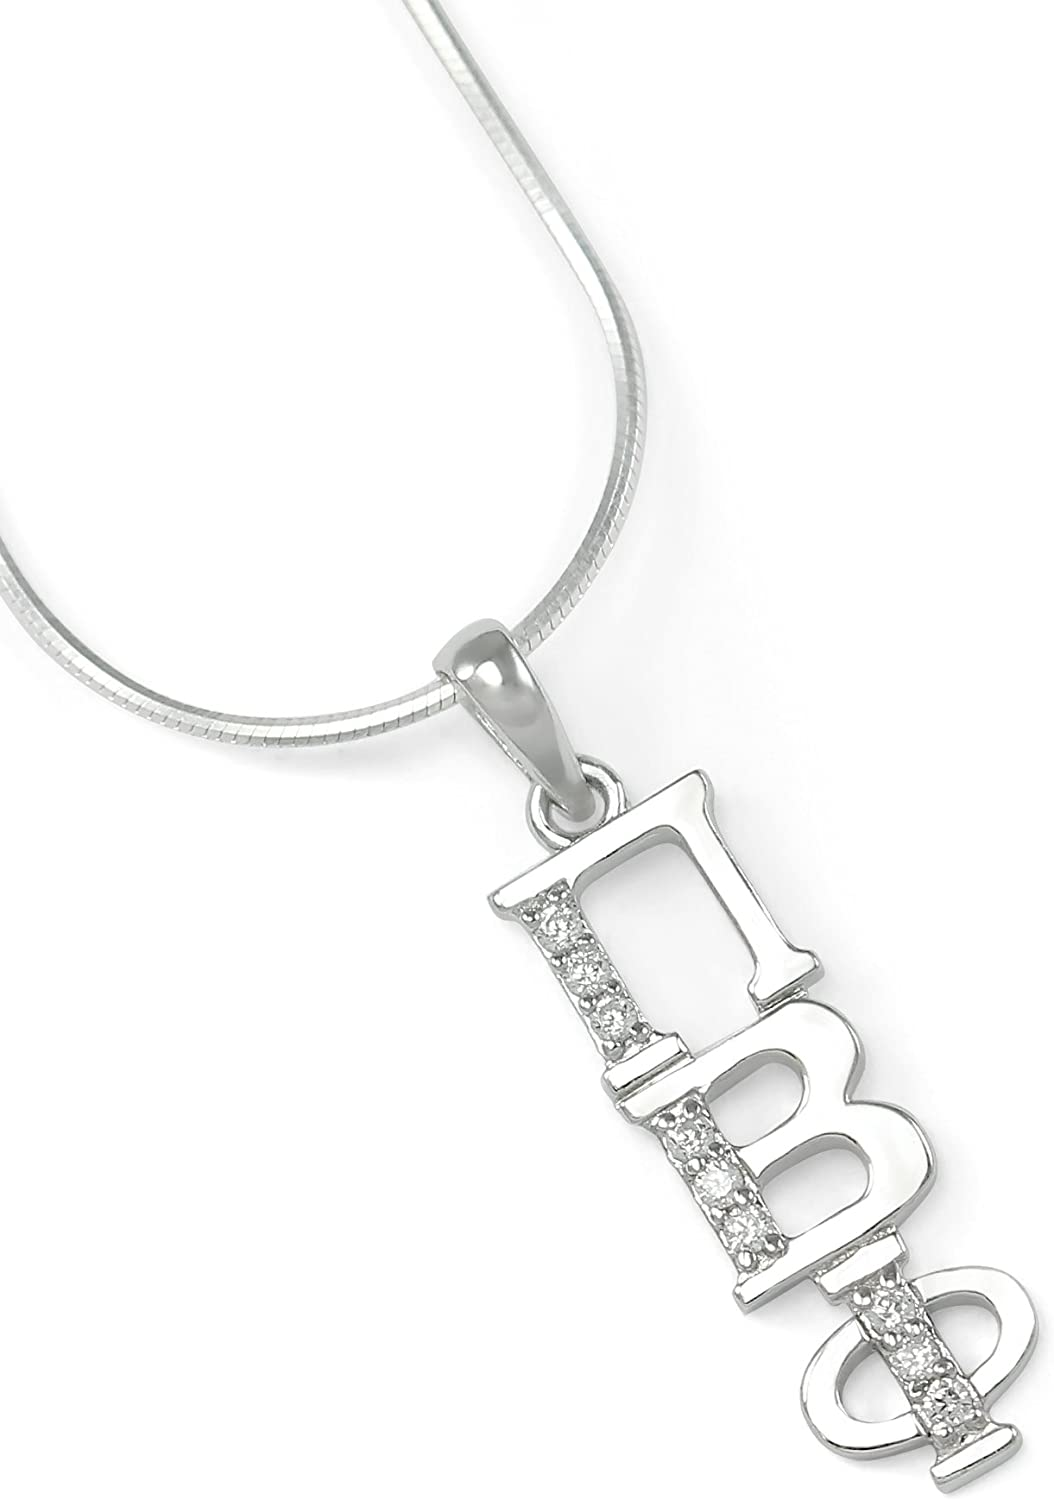 NEW!*** Pi Beta Phi sterling silver lavaliere pendant